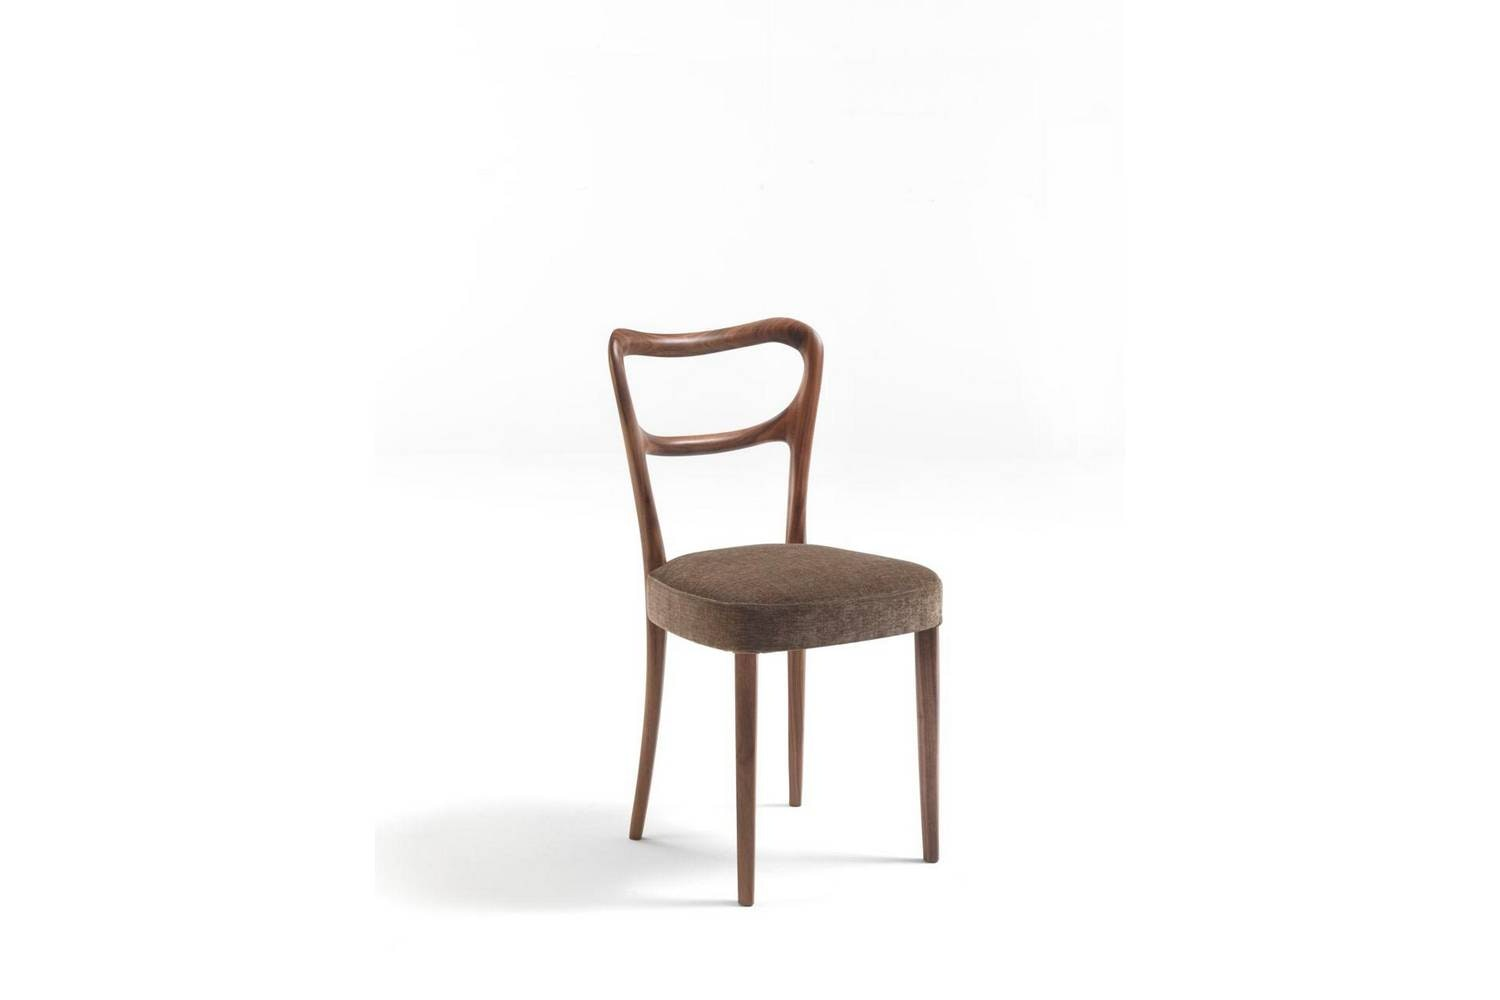 Noemi Chair by Marelli & Molteni for Porada